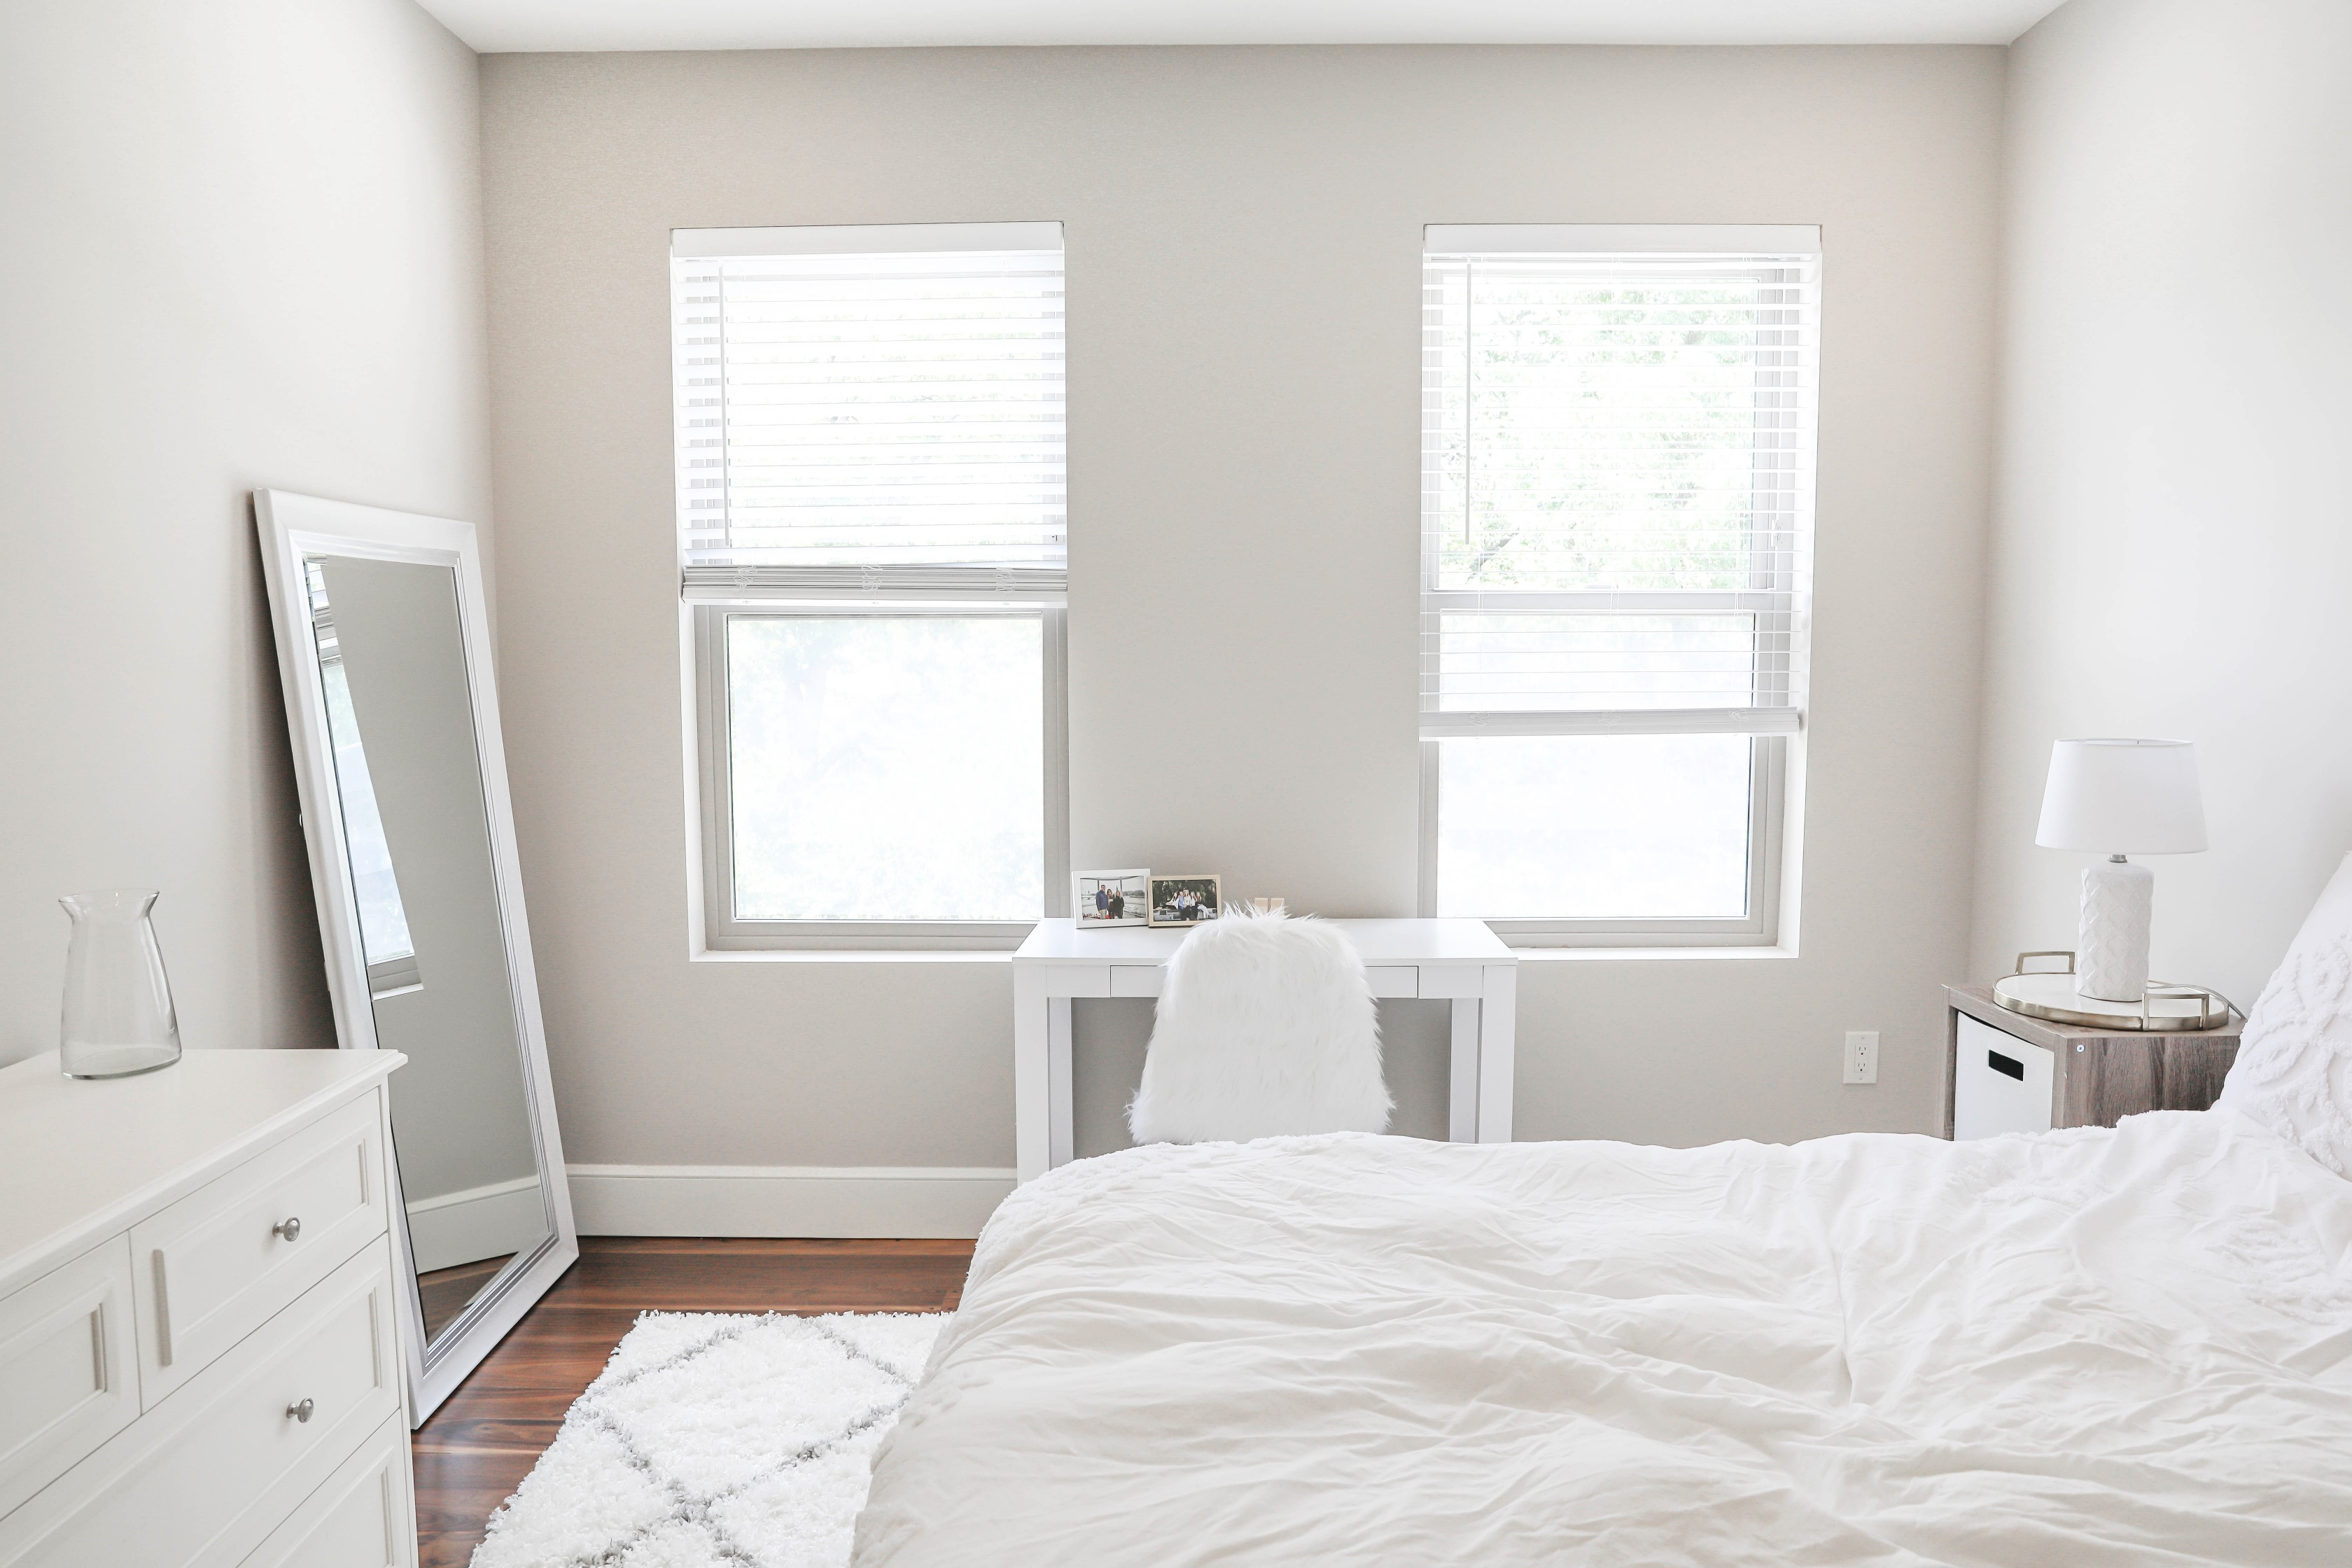 I moved! Sneak peak apartment tour for my white and gray room! I love simple and elegant apartment decor! My nuloom rug looks so good with my white furniture! Details on daily dose of charm by lauren lindmark